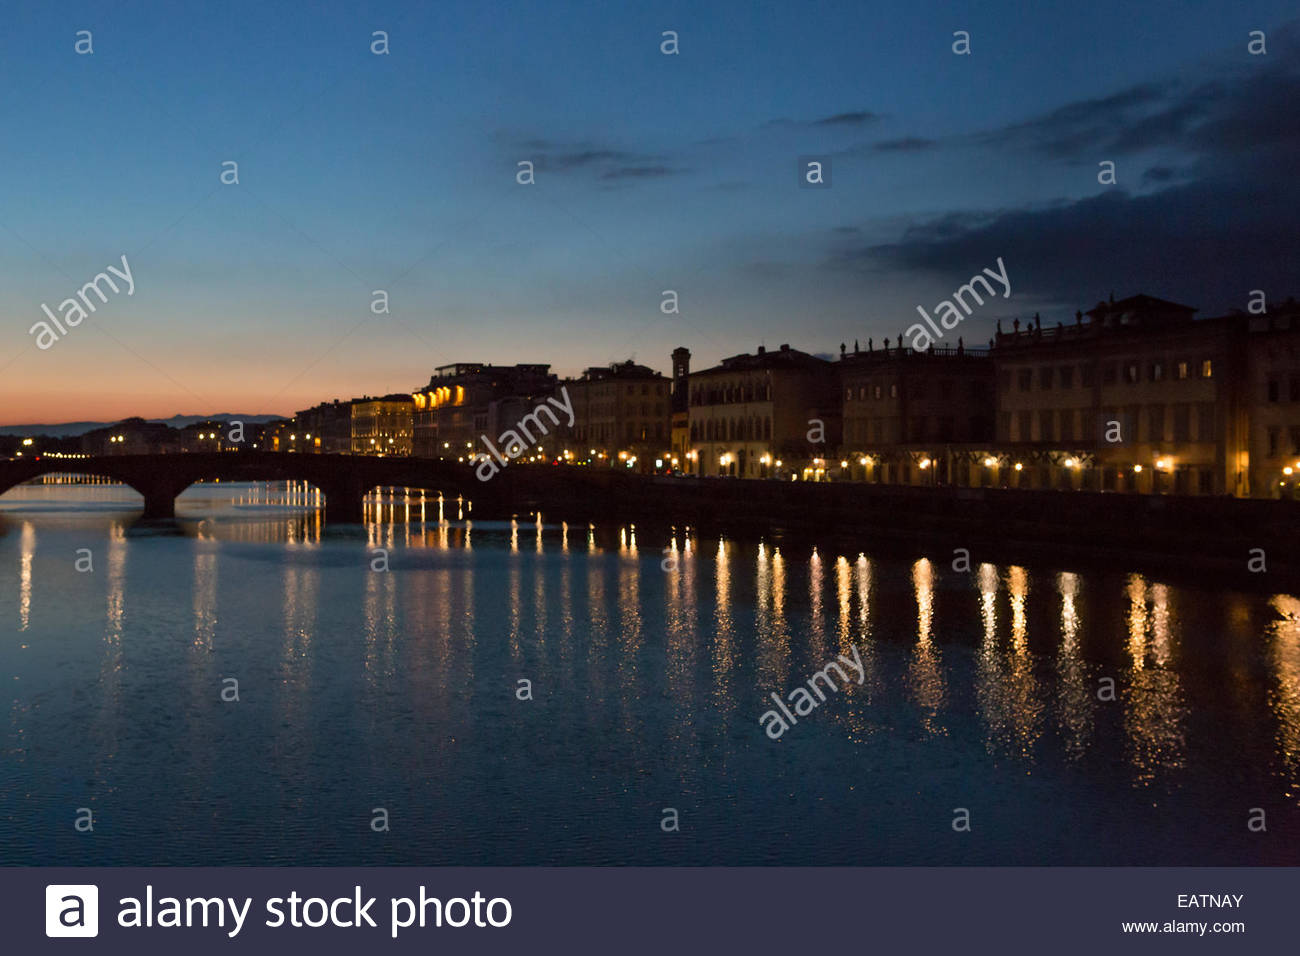 The city of Florence is divided by the Arno River as seen at sunset. - Stock Image